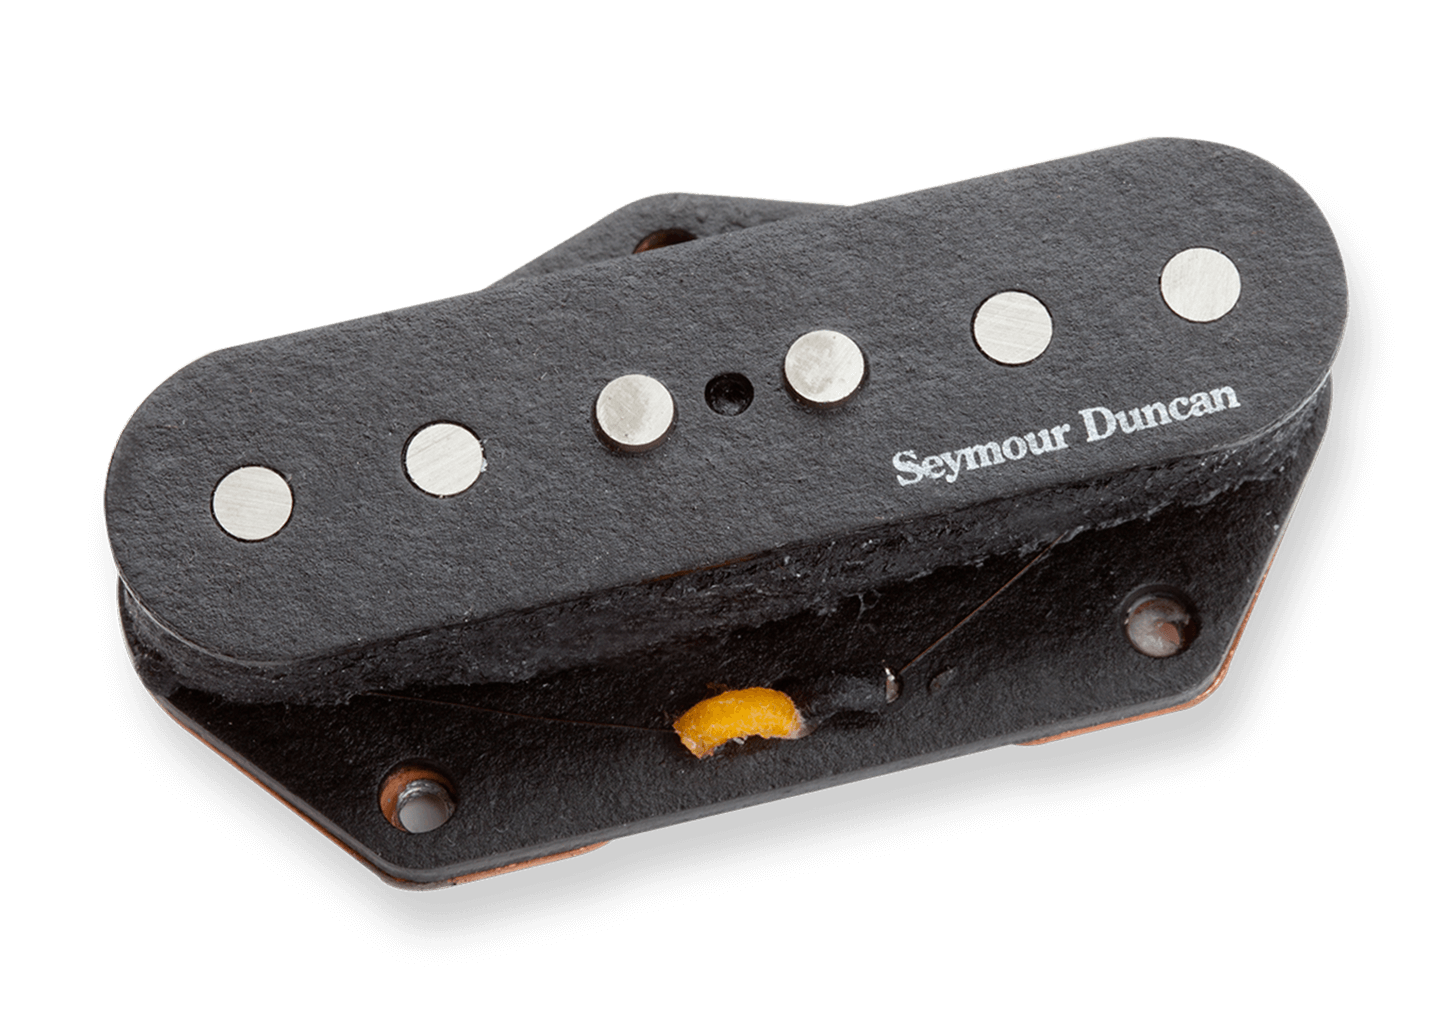 Remarkable Seymour Duncan Aptl 3Jd Jerry Donahue Tele Lead Electric Guitar Wiring Digital Resources Cettecompassionincorg